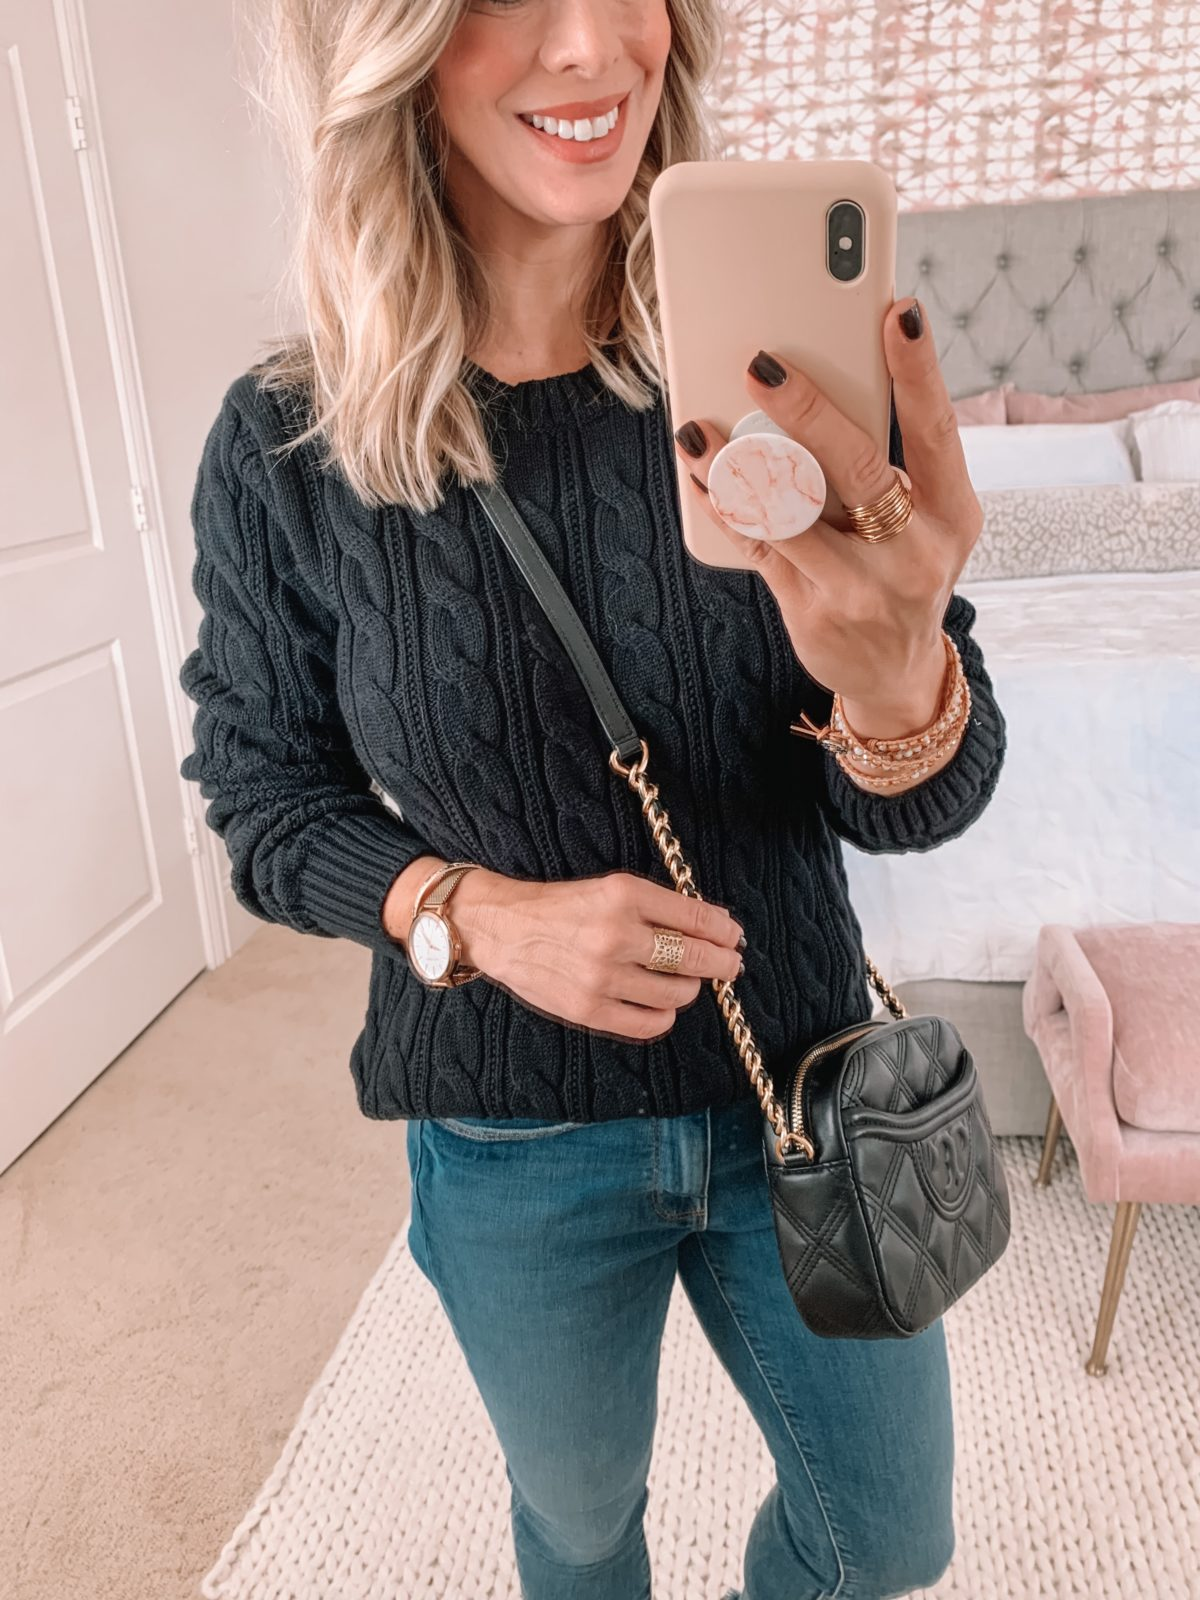 Amazon Fashion Faves, Cable Knit Sweater, Jeans, Crossbody